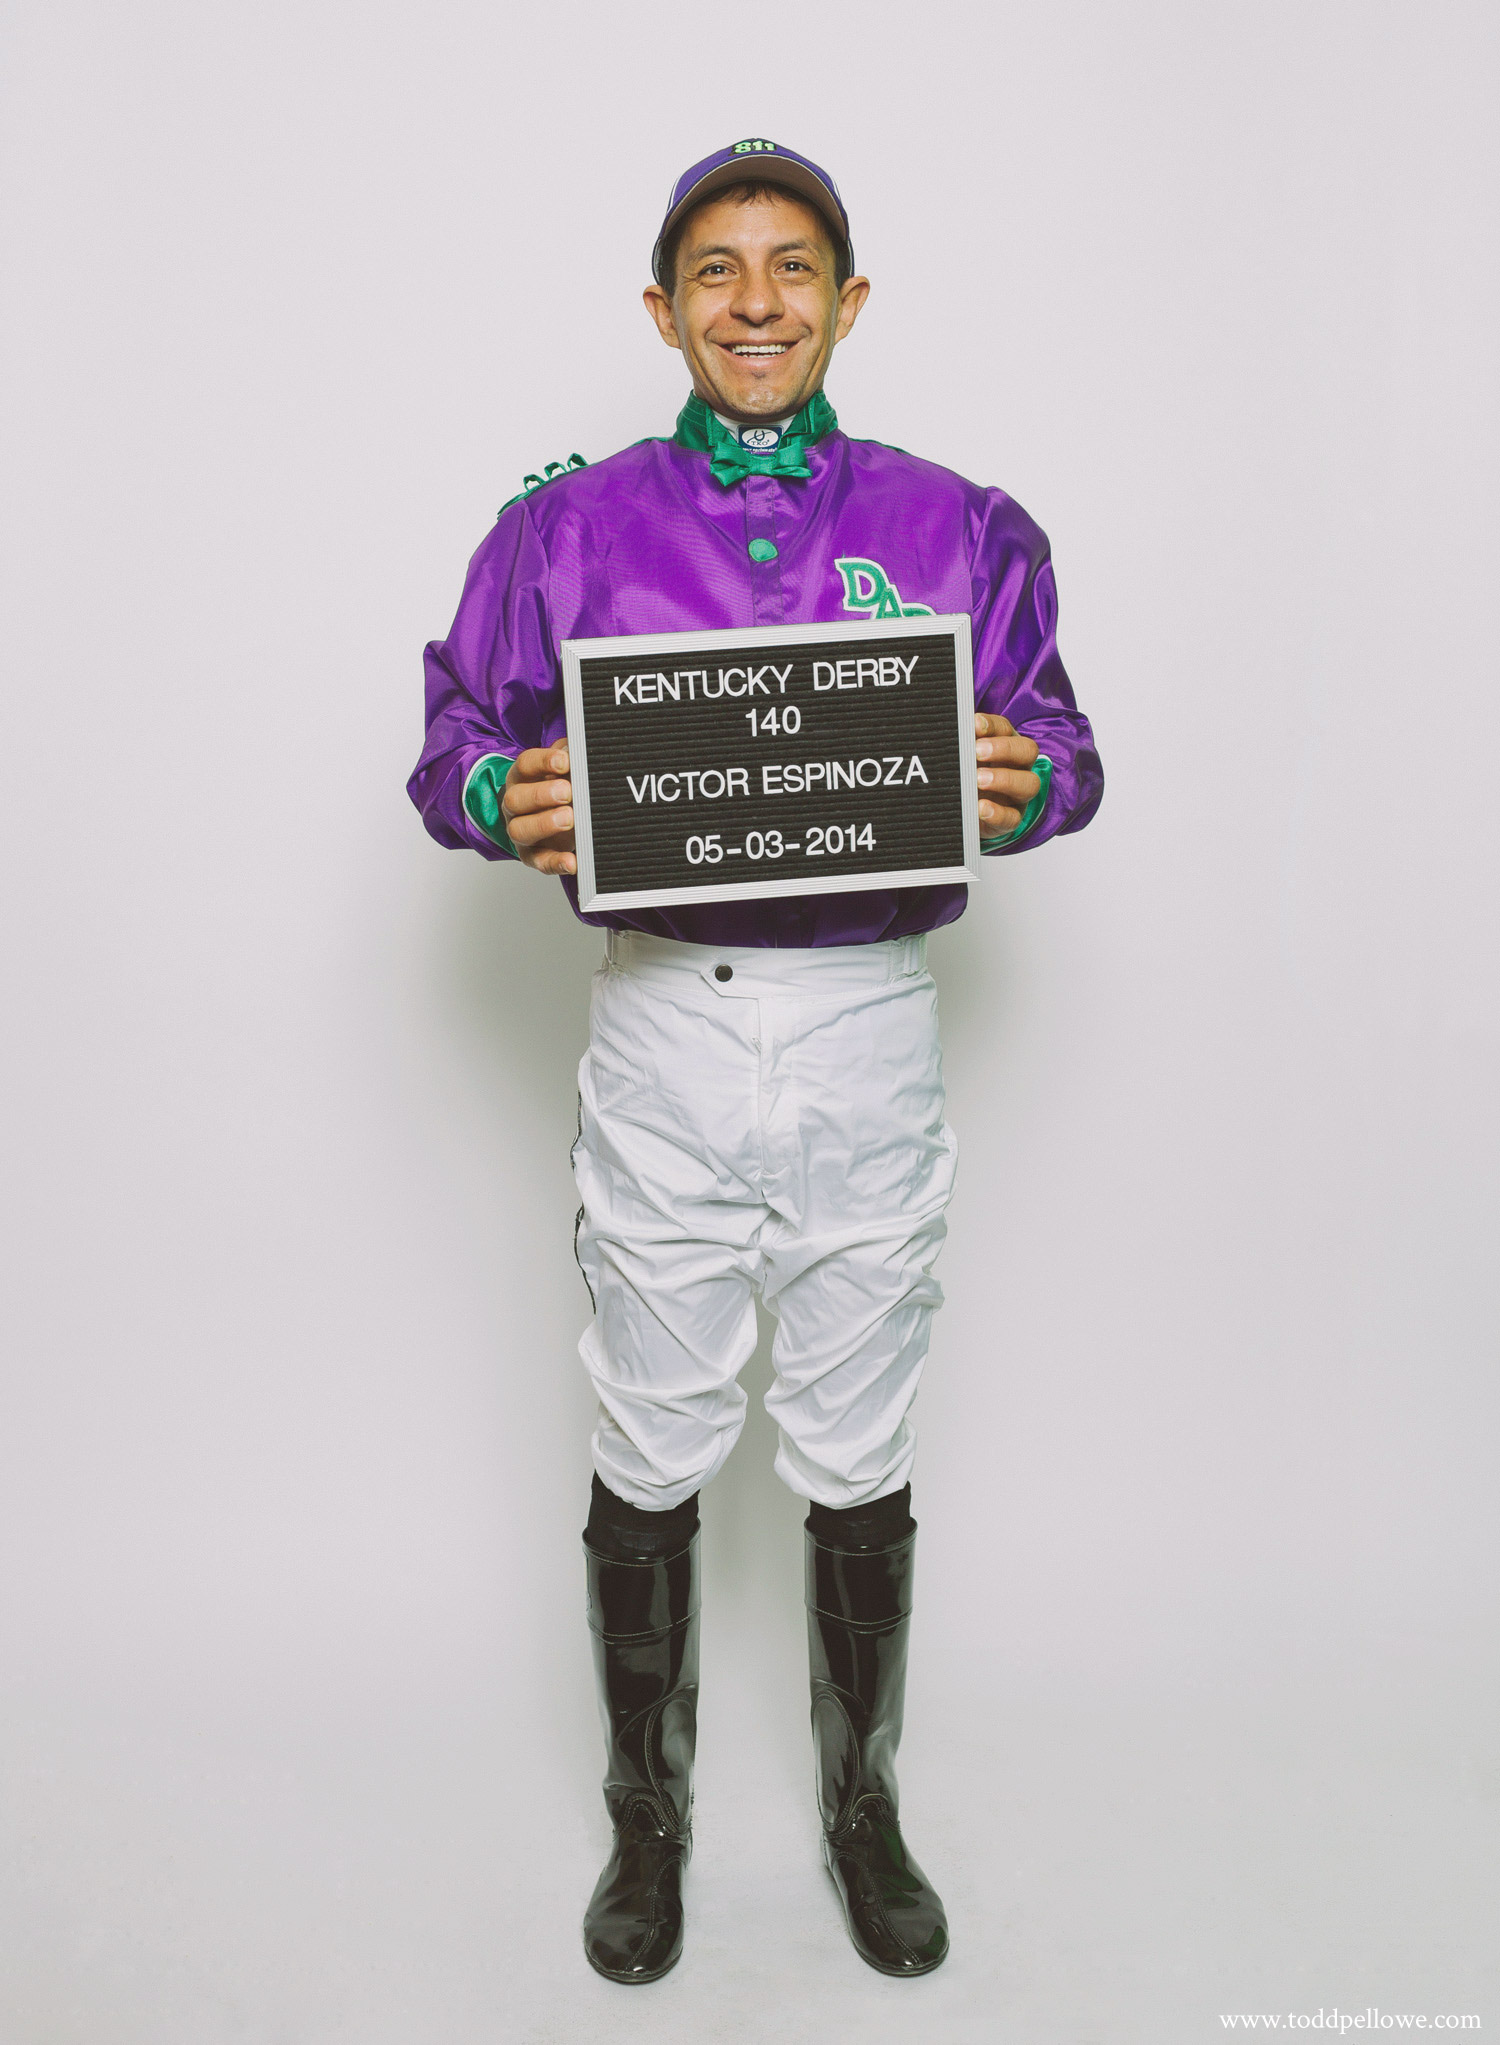 Victor Espinoza, Kentucky Derby 140 Winner